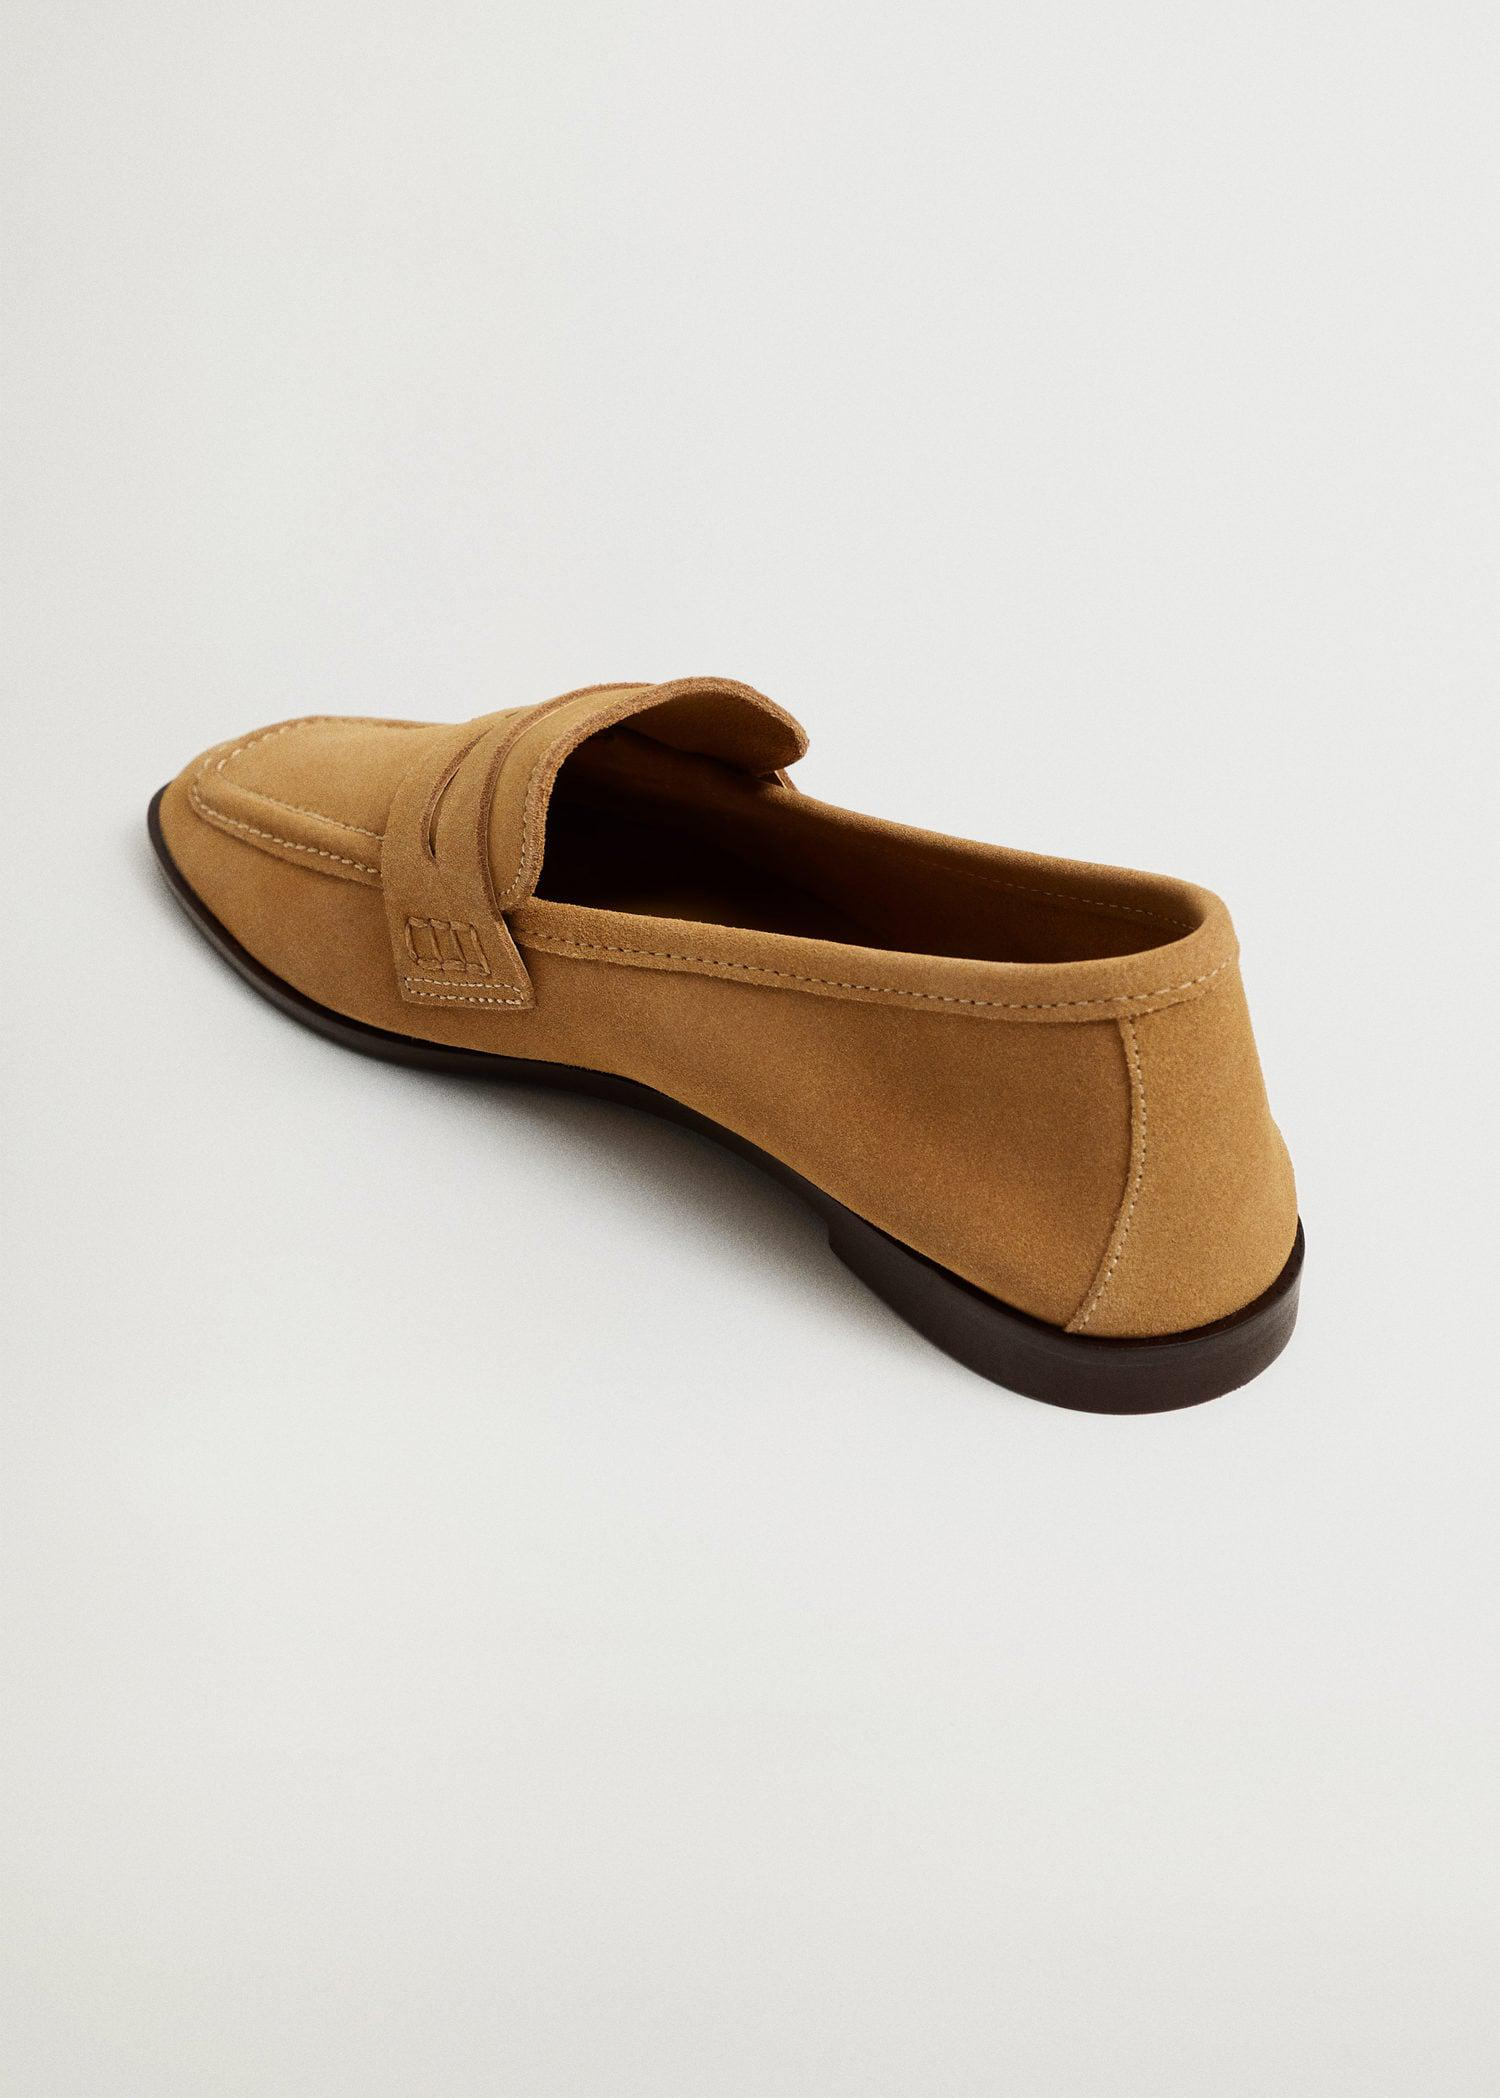 Suede leather moccasin 2